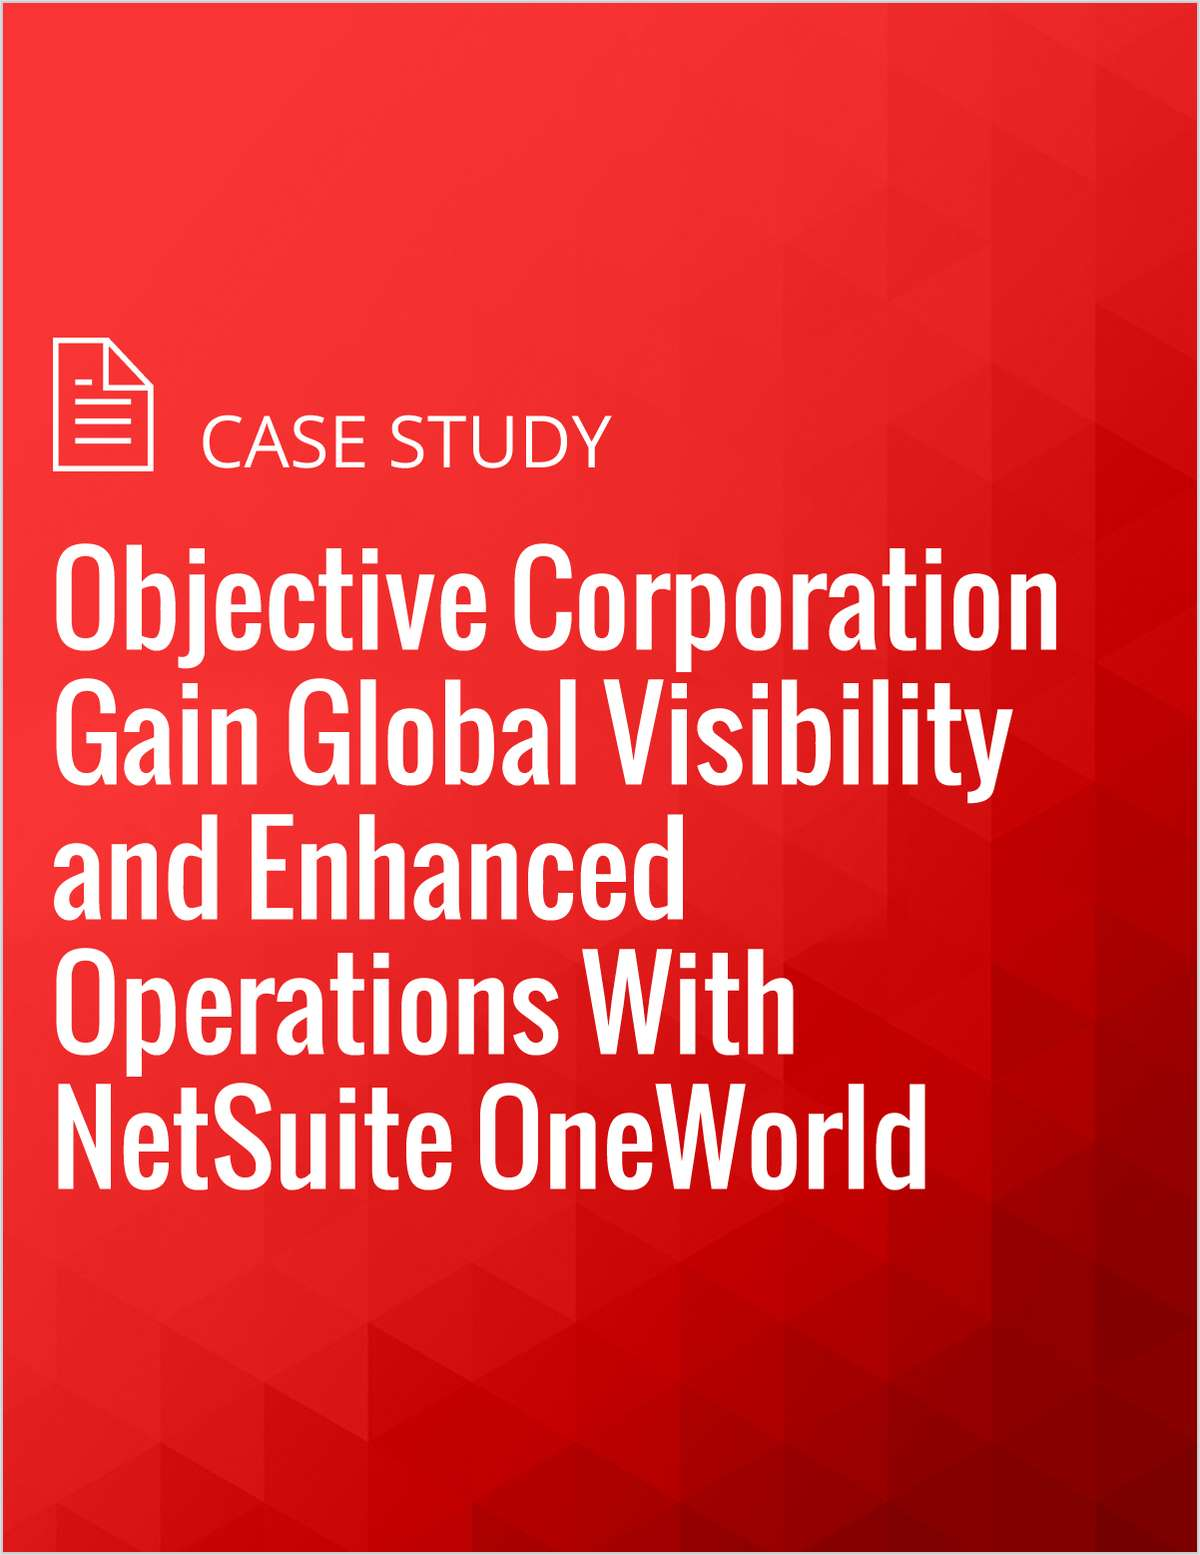 Objective Corporation Gain Global Visibility and Enhanced Operations With NetSuite OneWorld